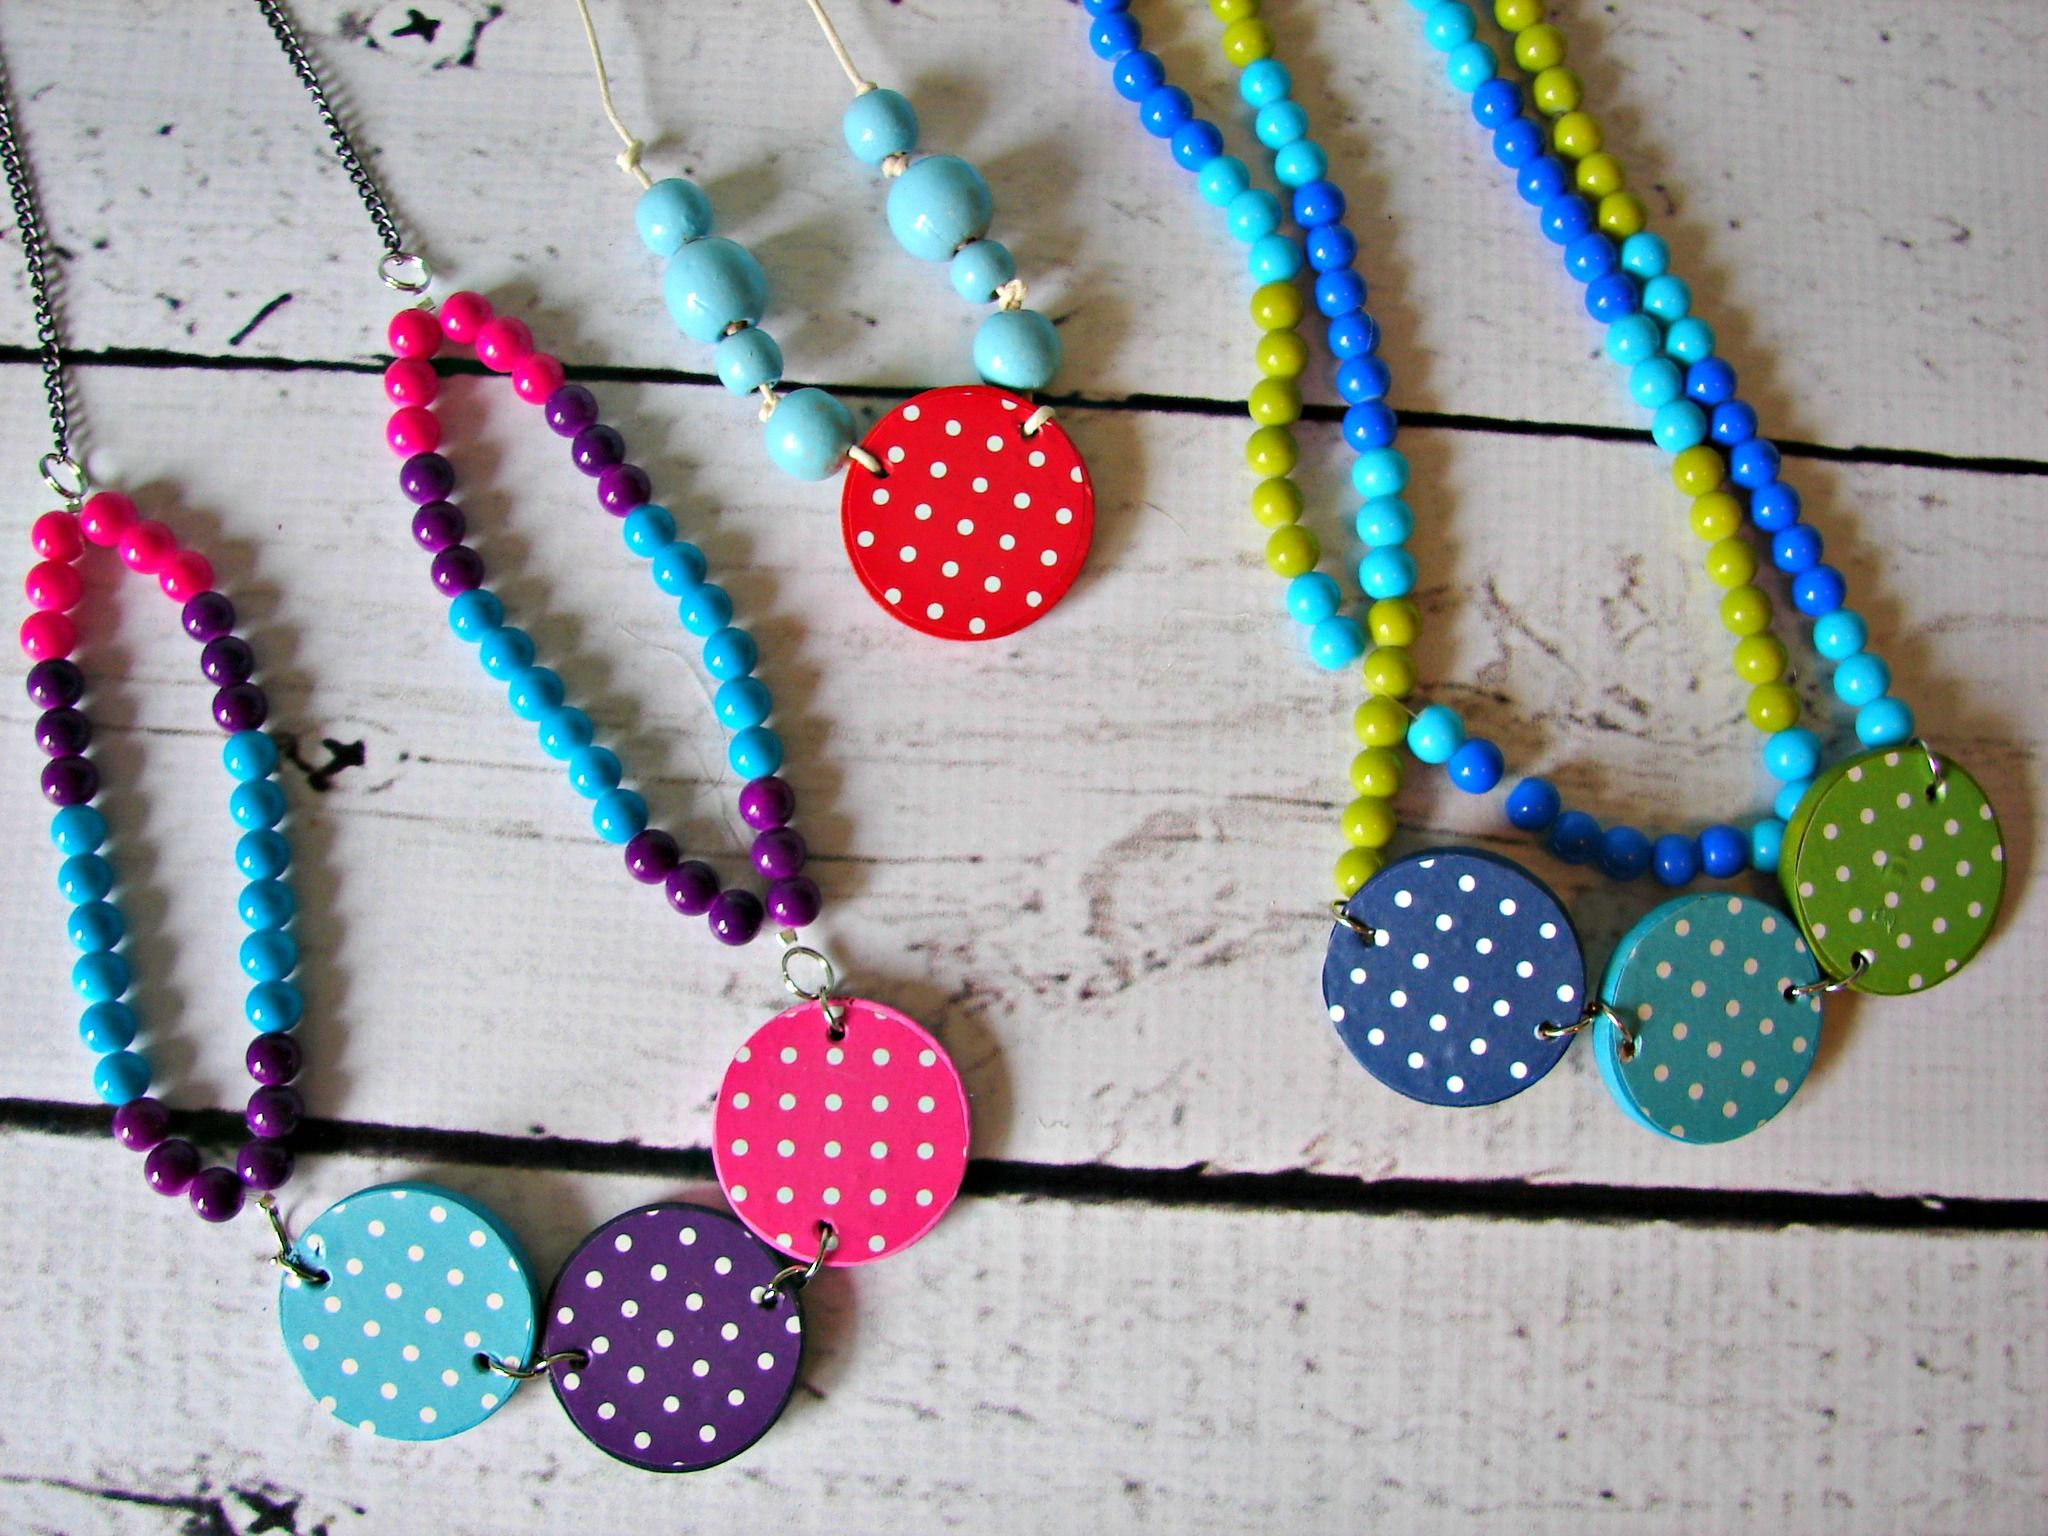 Vinyl On Necklaces Tutorial So Cute From The